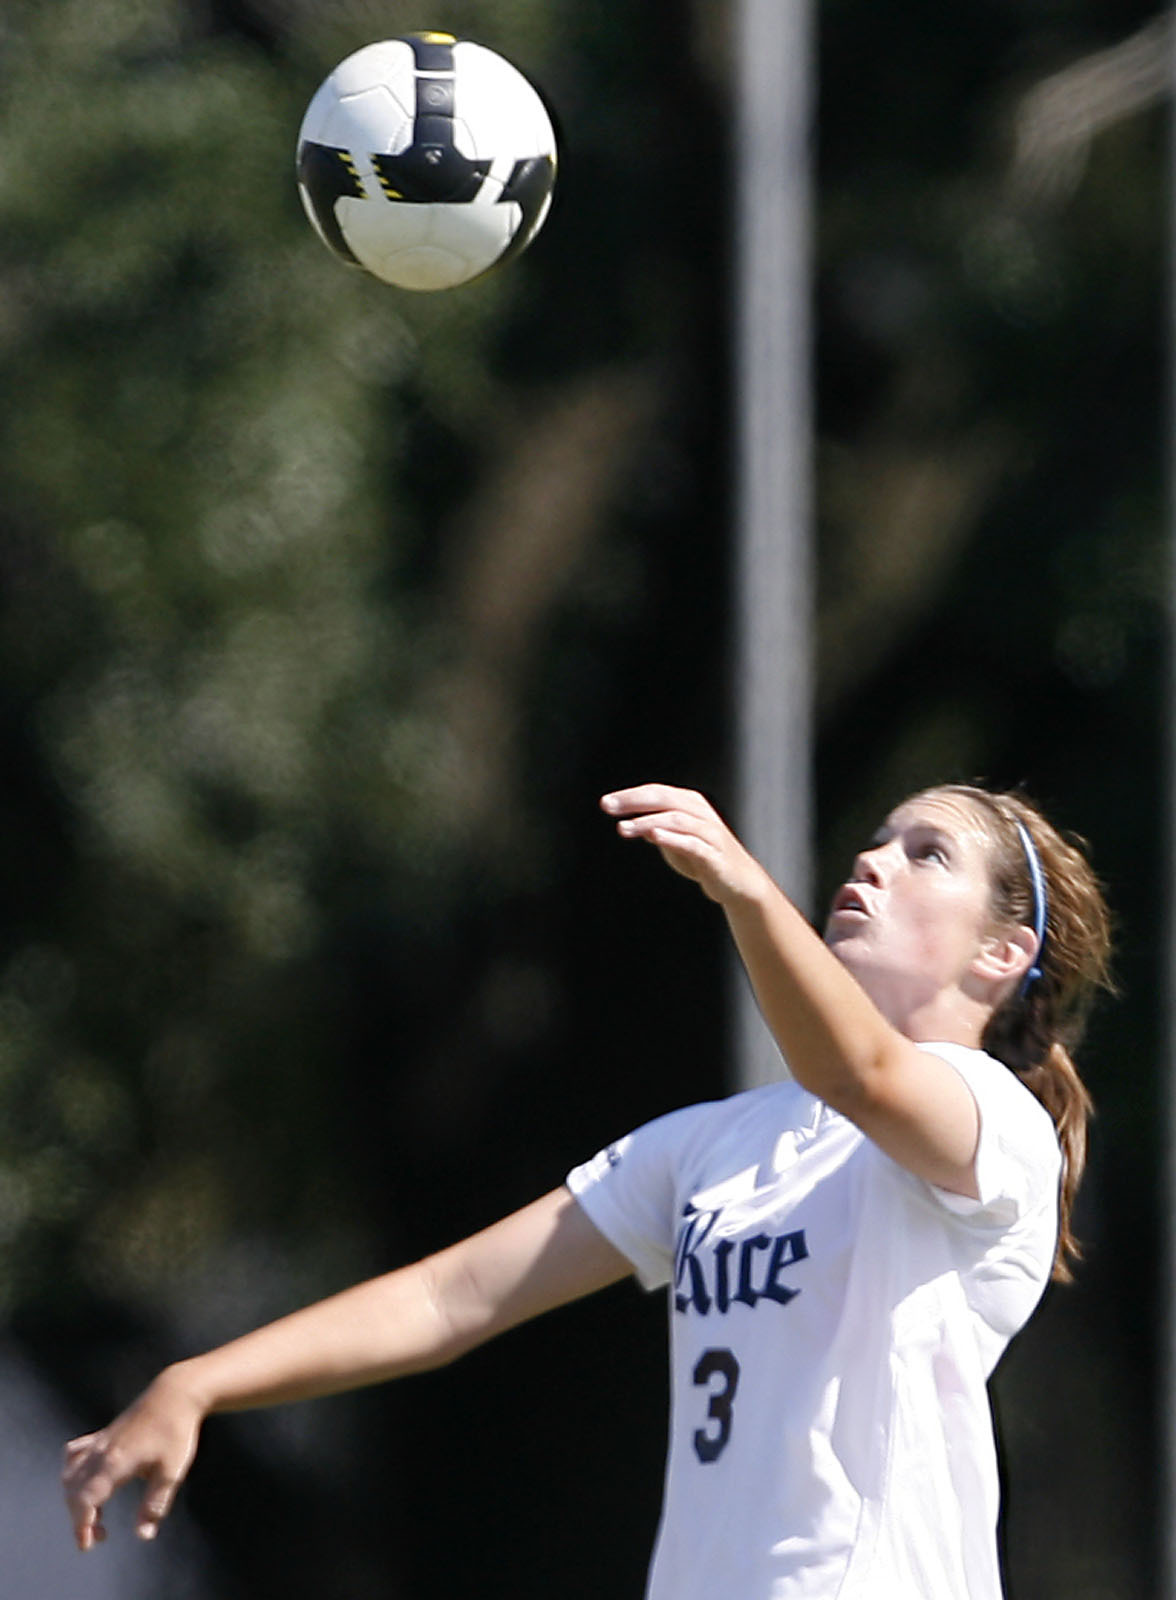 <b>Heads-up! The Rice soccer season starts Friday (Aug. 20) in Waco.</b>